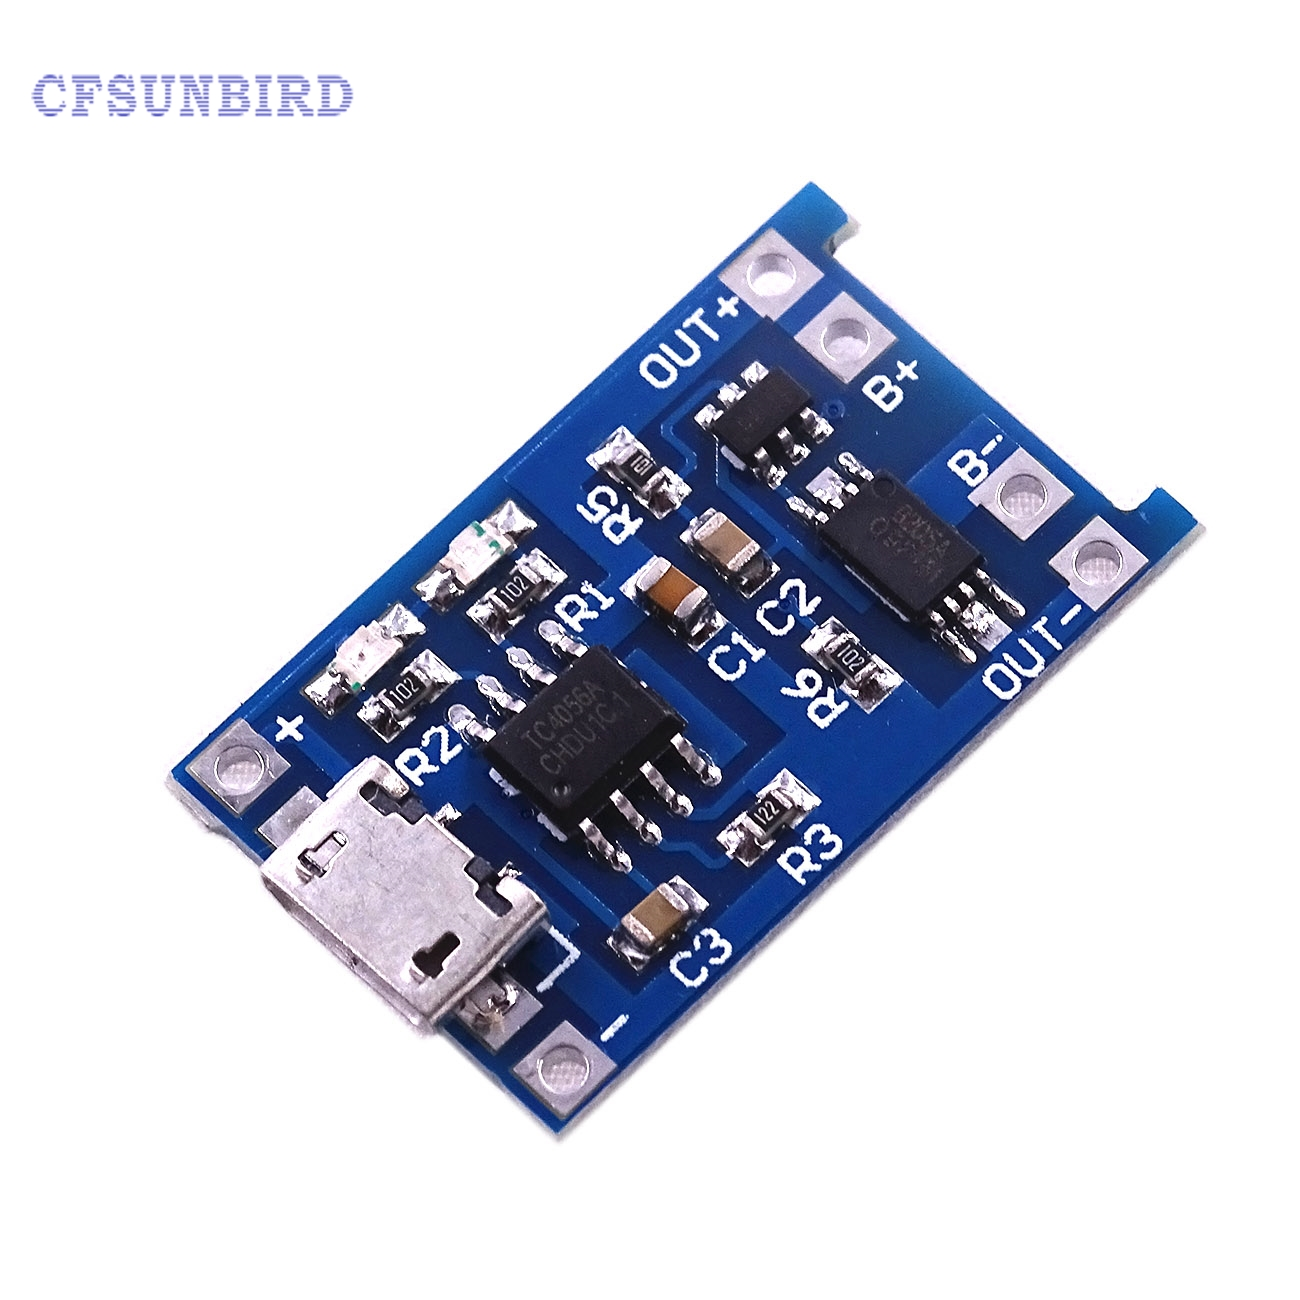 50pcs  Micro USB 5V 1A 18650 TP4056 Lithium Battery Charger Module Charging Board With Protection Dual Functions 10pcs lot 2s li ion lithium battery 18650 charger protection module board 3a 7 4v 8 4v free shipping